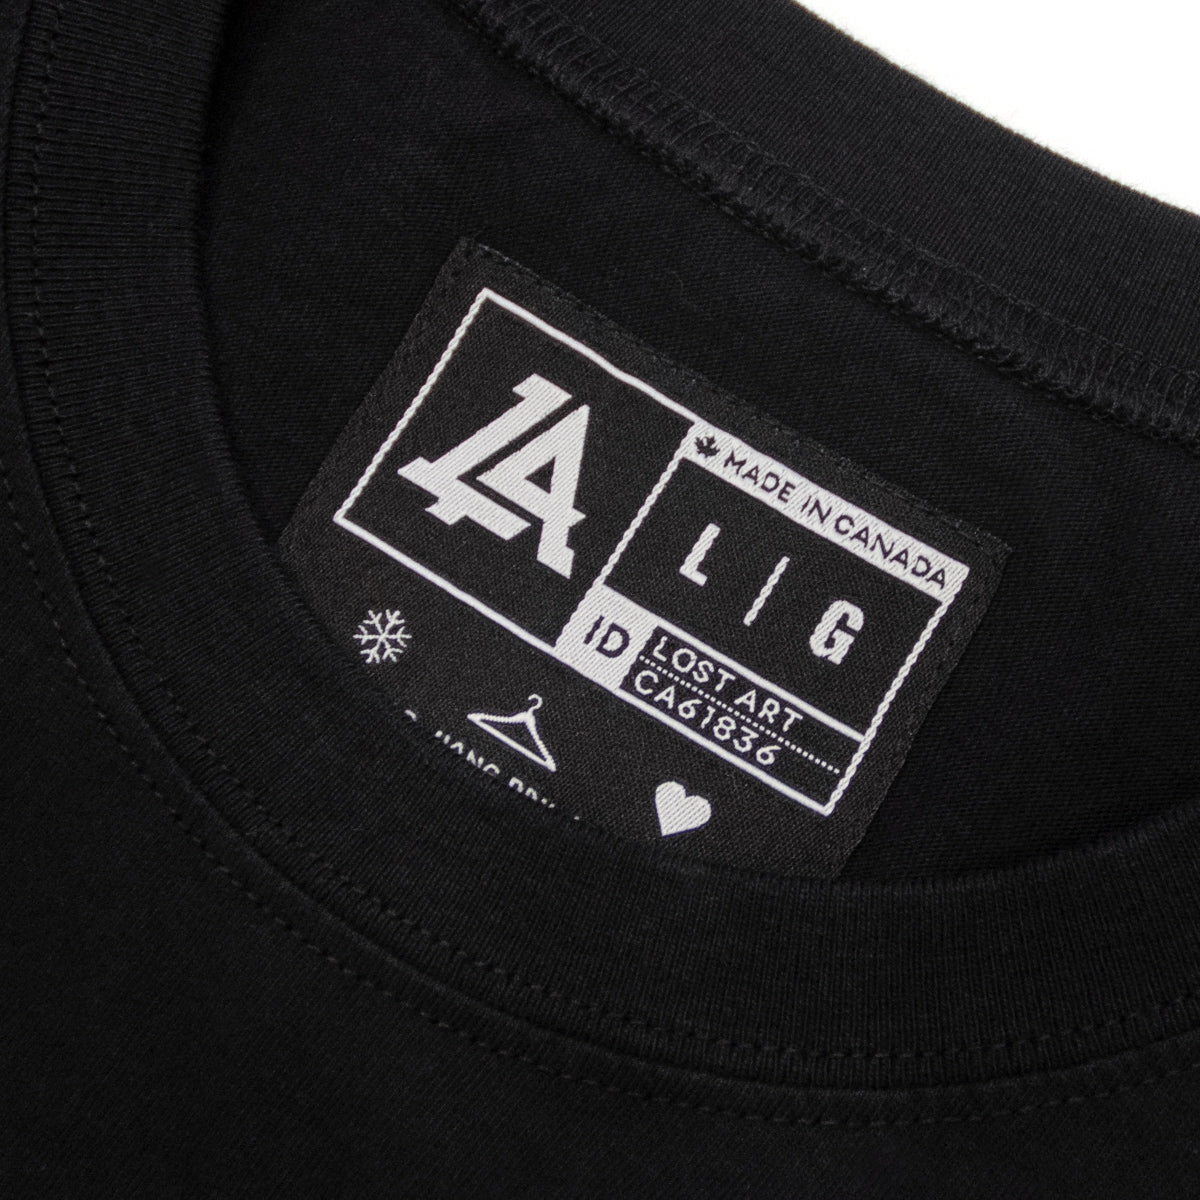 Lost Art Canada - white on black lost art icon logo tee inside tag view